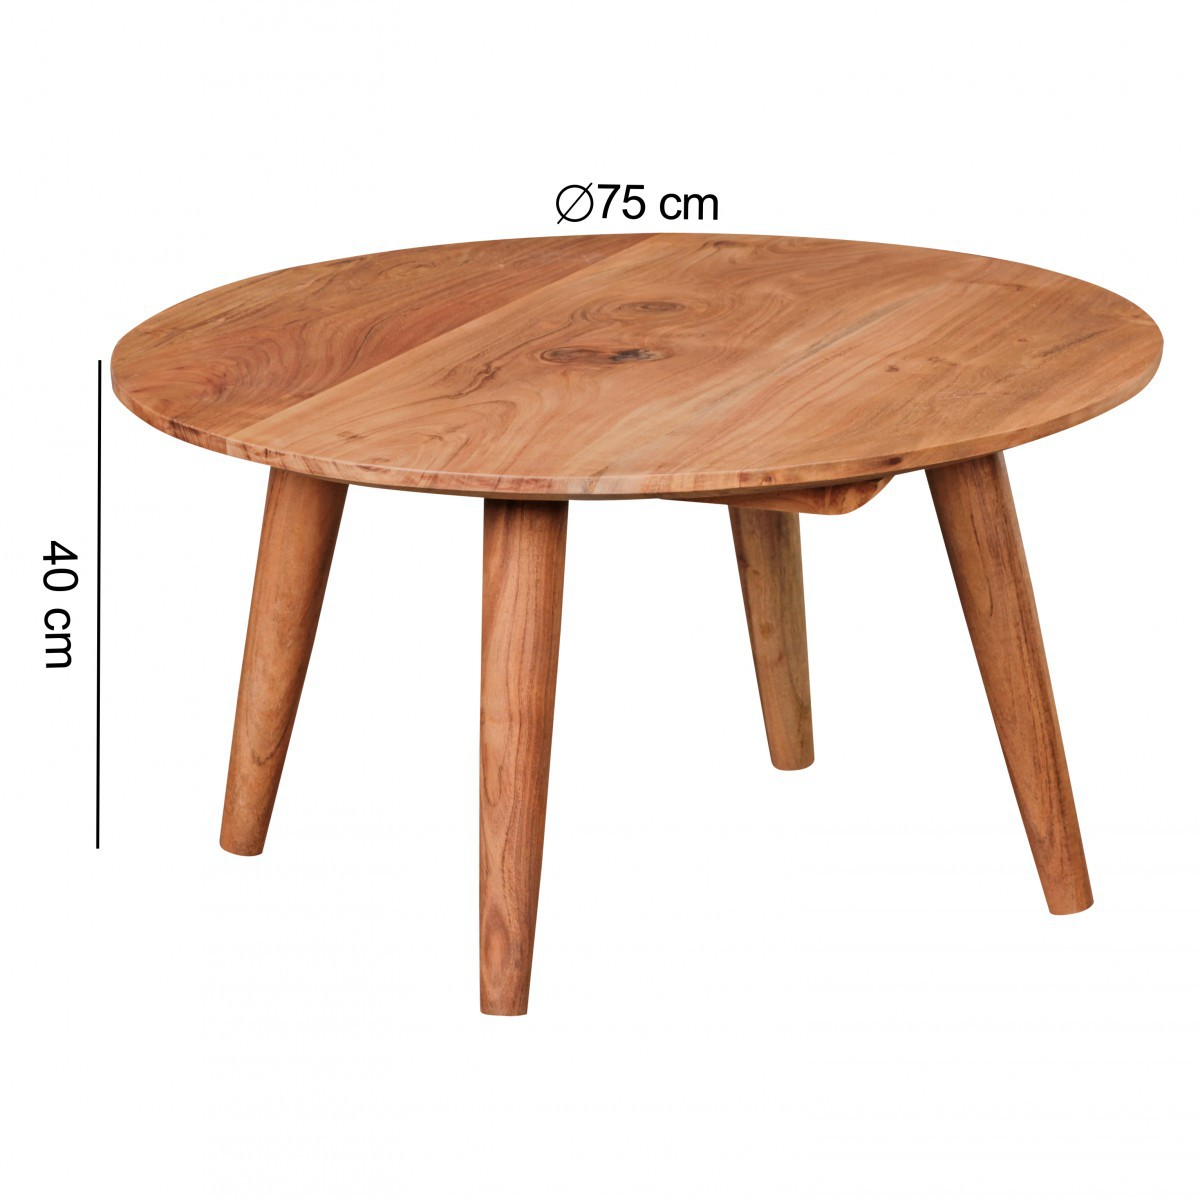 Finebuy table basse en bois massif acacia table basse - Tables basses rondes en bois ...